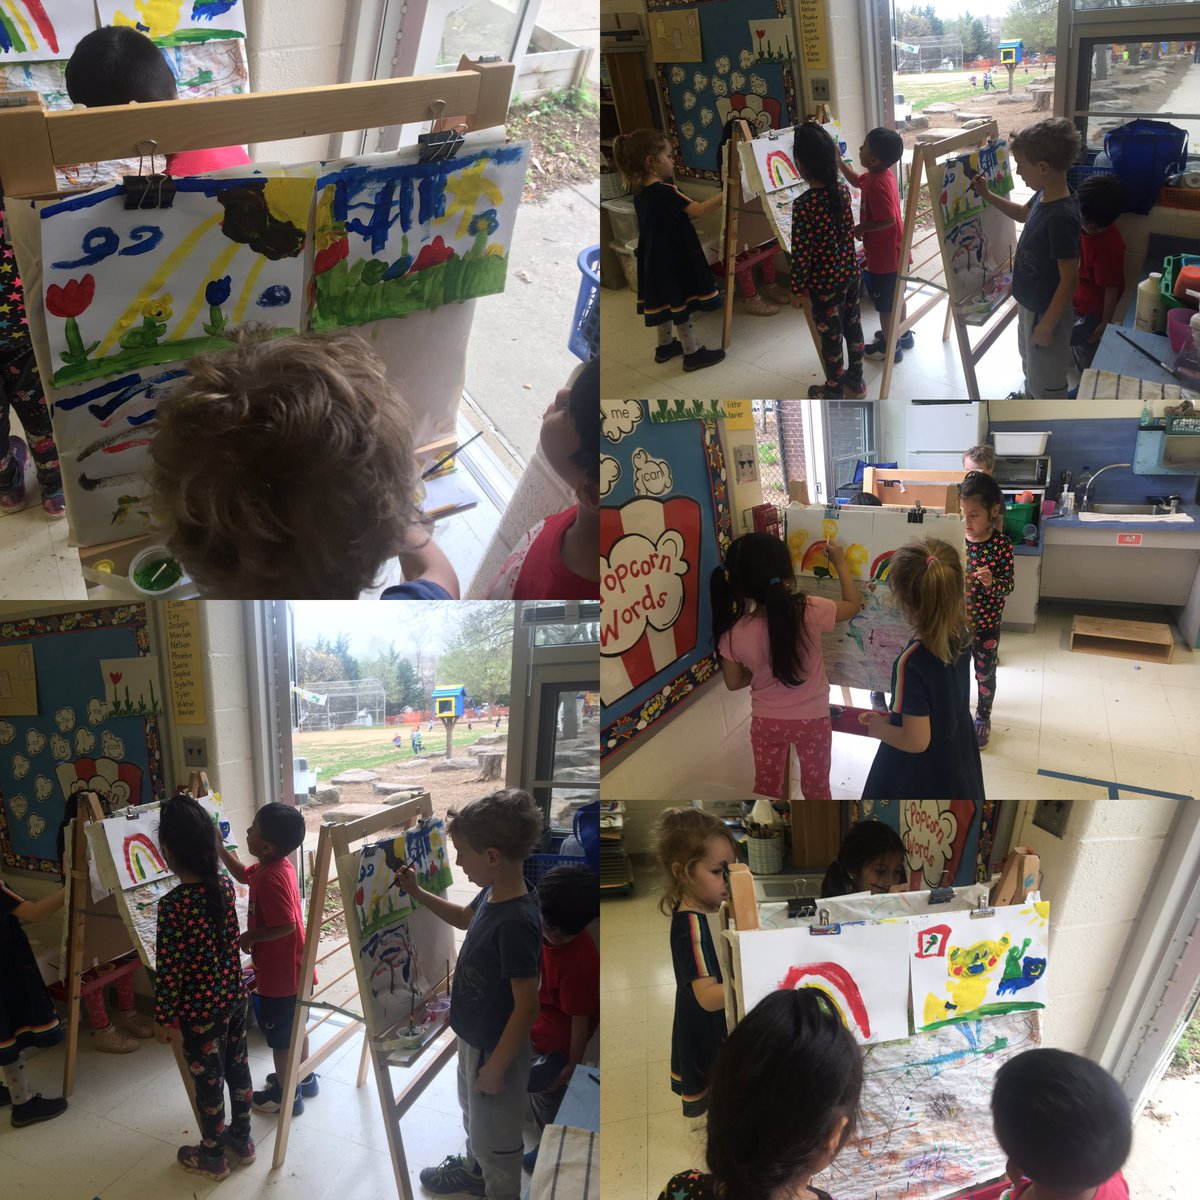 Ms Gutowski's artists. Spring is in the air🎨🌸⁦<a target='_blank' href='http://twitter.com/GlebeAPS'>@GlebeAPS</a>⁩ ⁦<a target='_blank' href='http://twitter.com/GlebeITC'>@GlebeITC</a>⁩ <a target='_blank' href='https://t.co/RMcdnDW5YO'>https://t.co/RMcdnDW5YO</a>